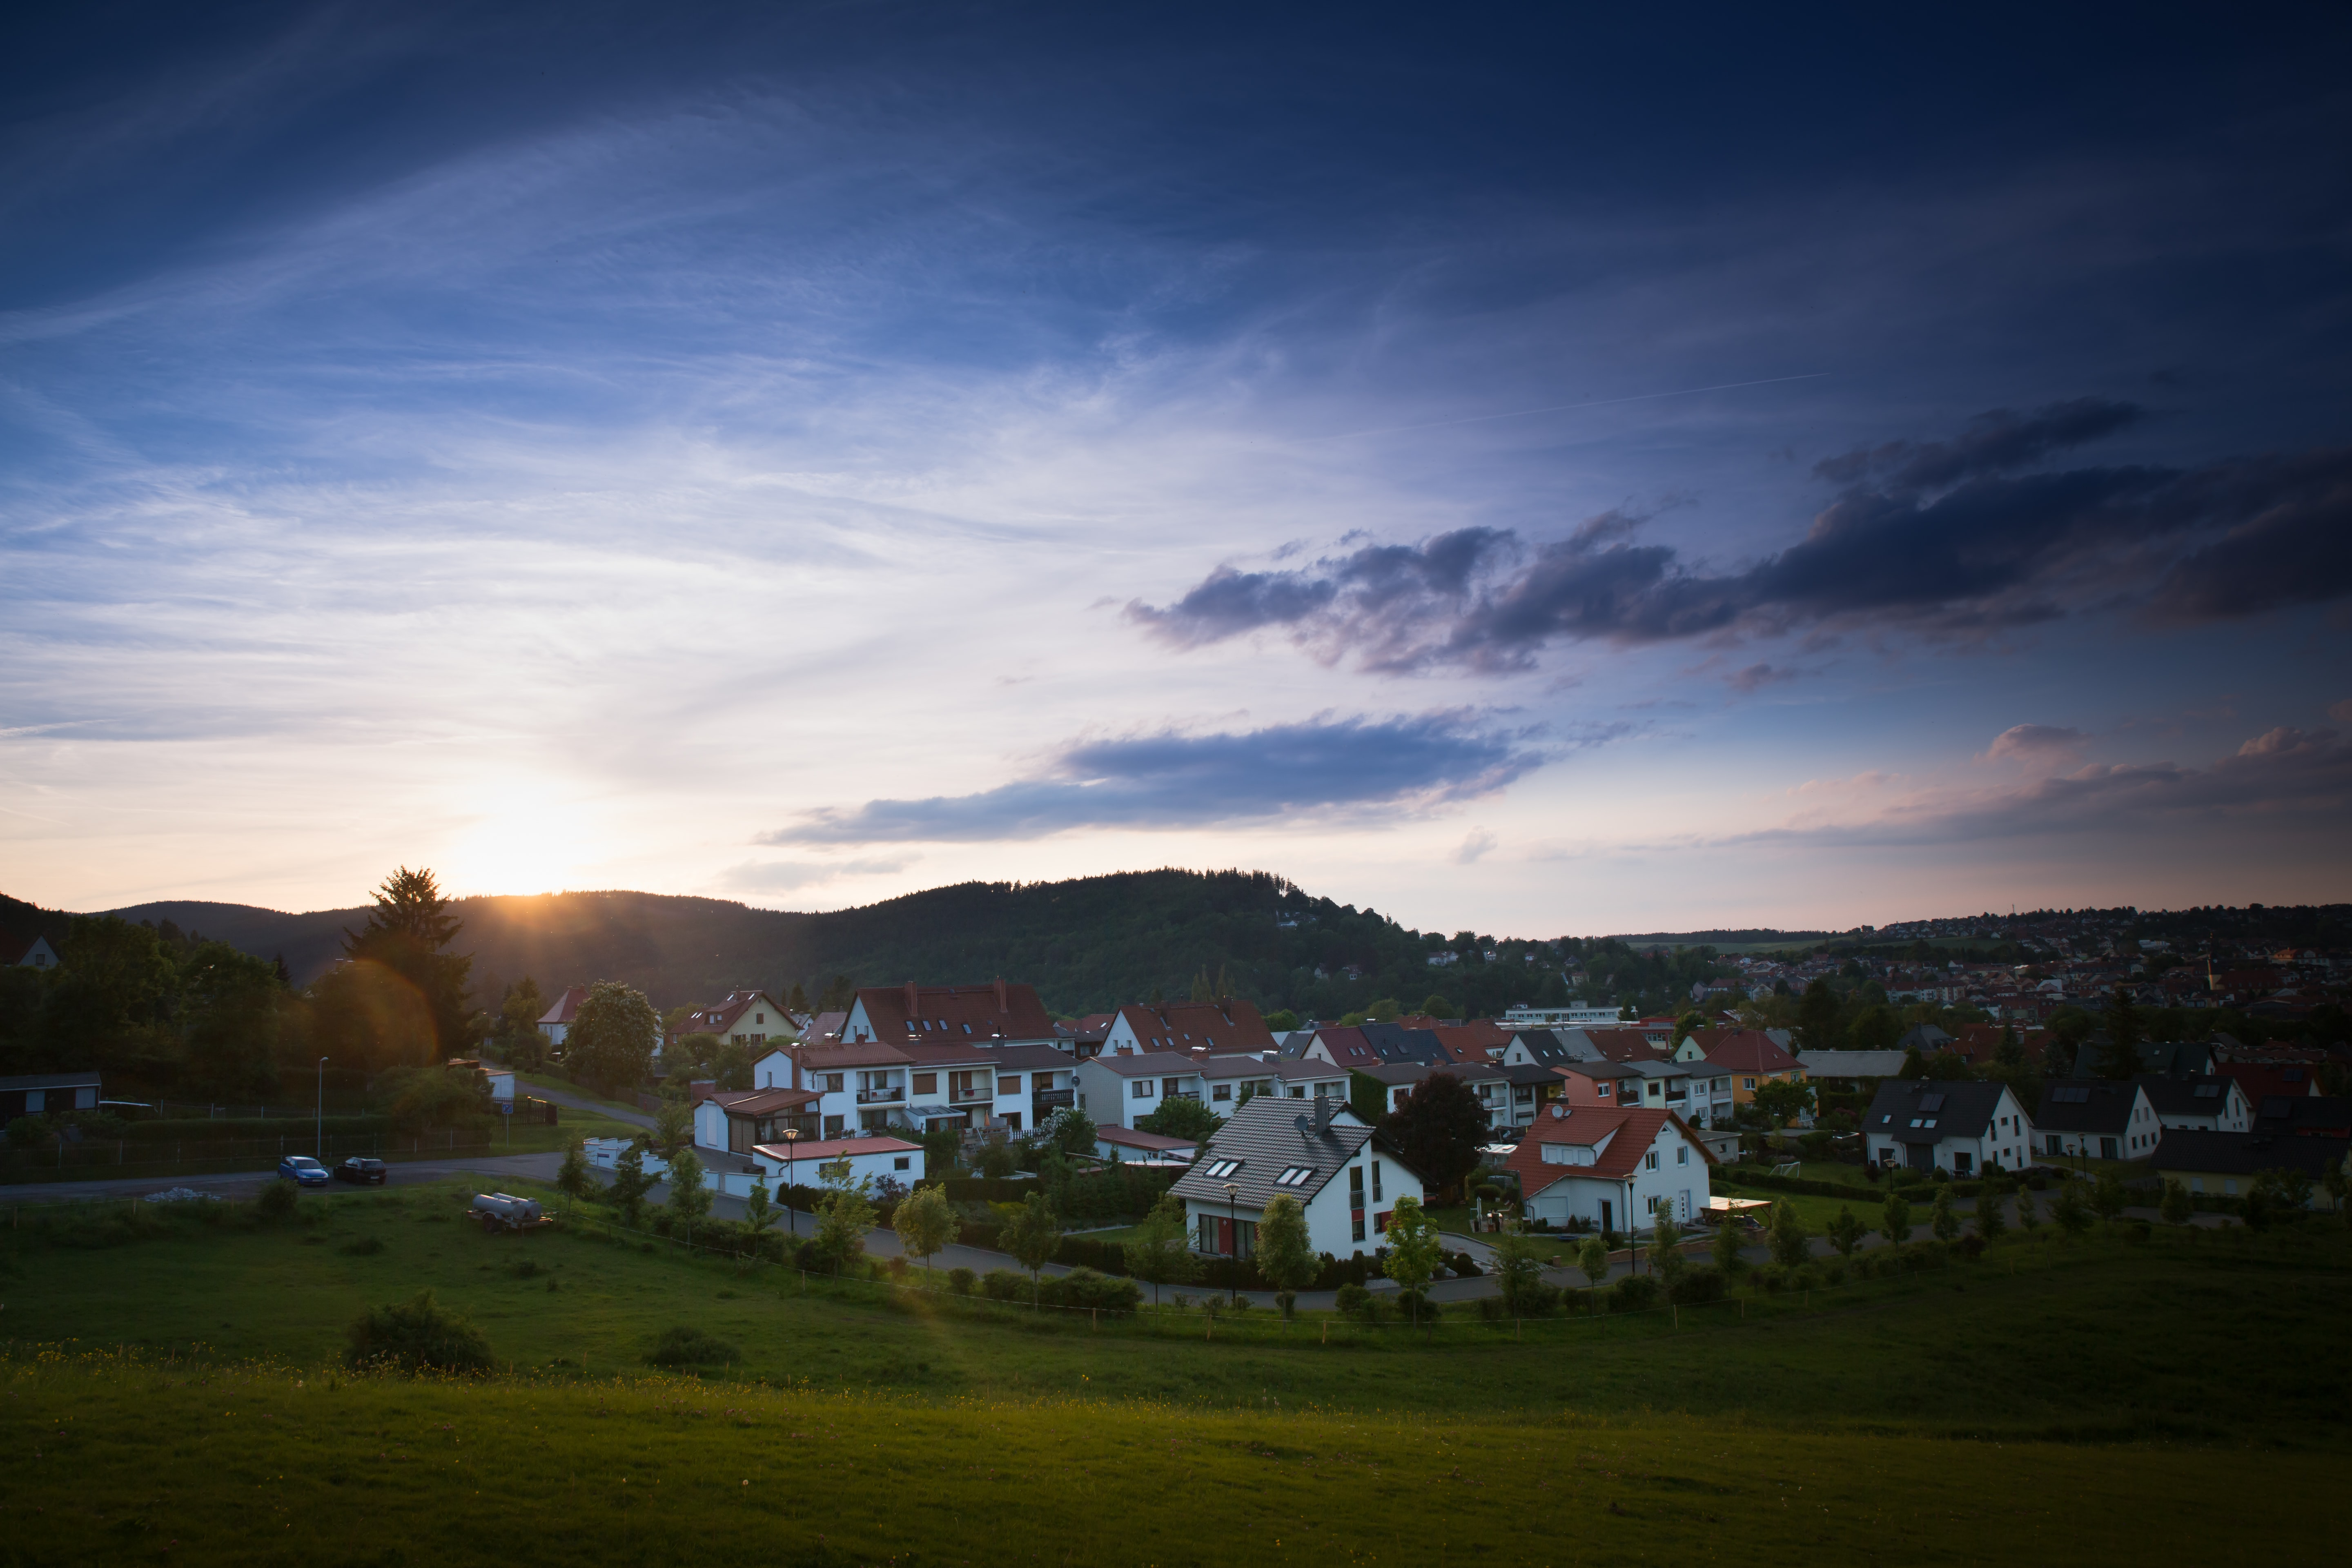 houses on green grass field under cloudy sky during daytime